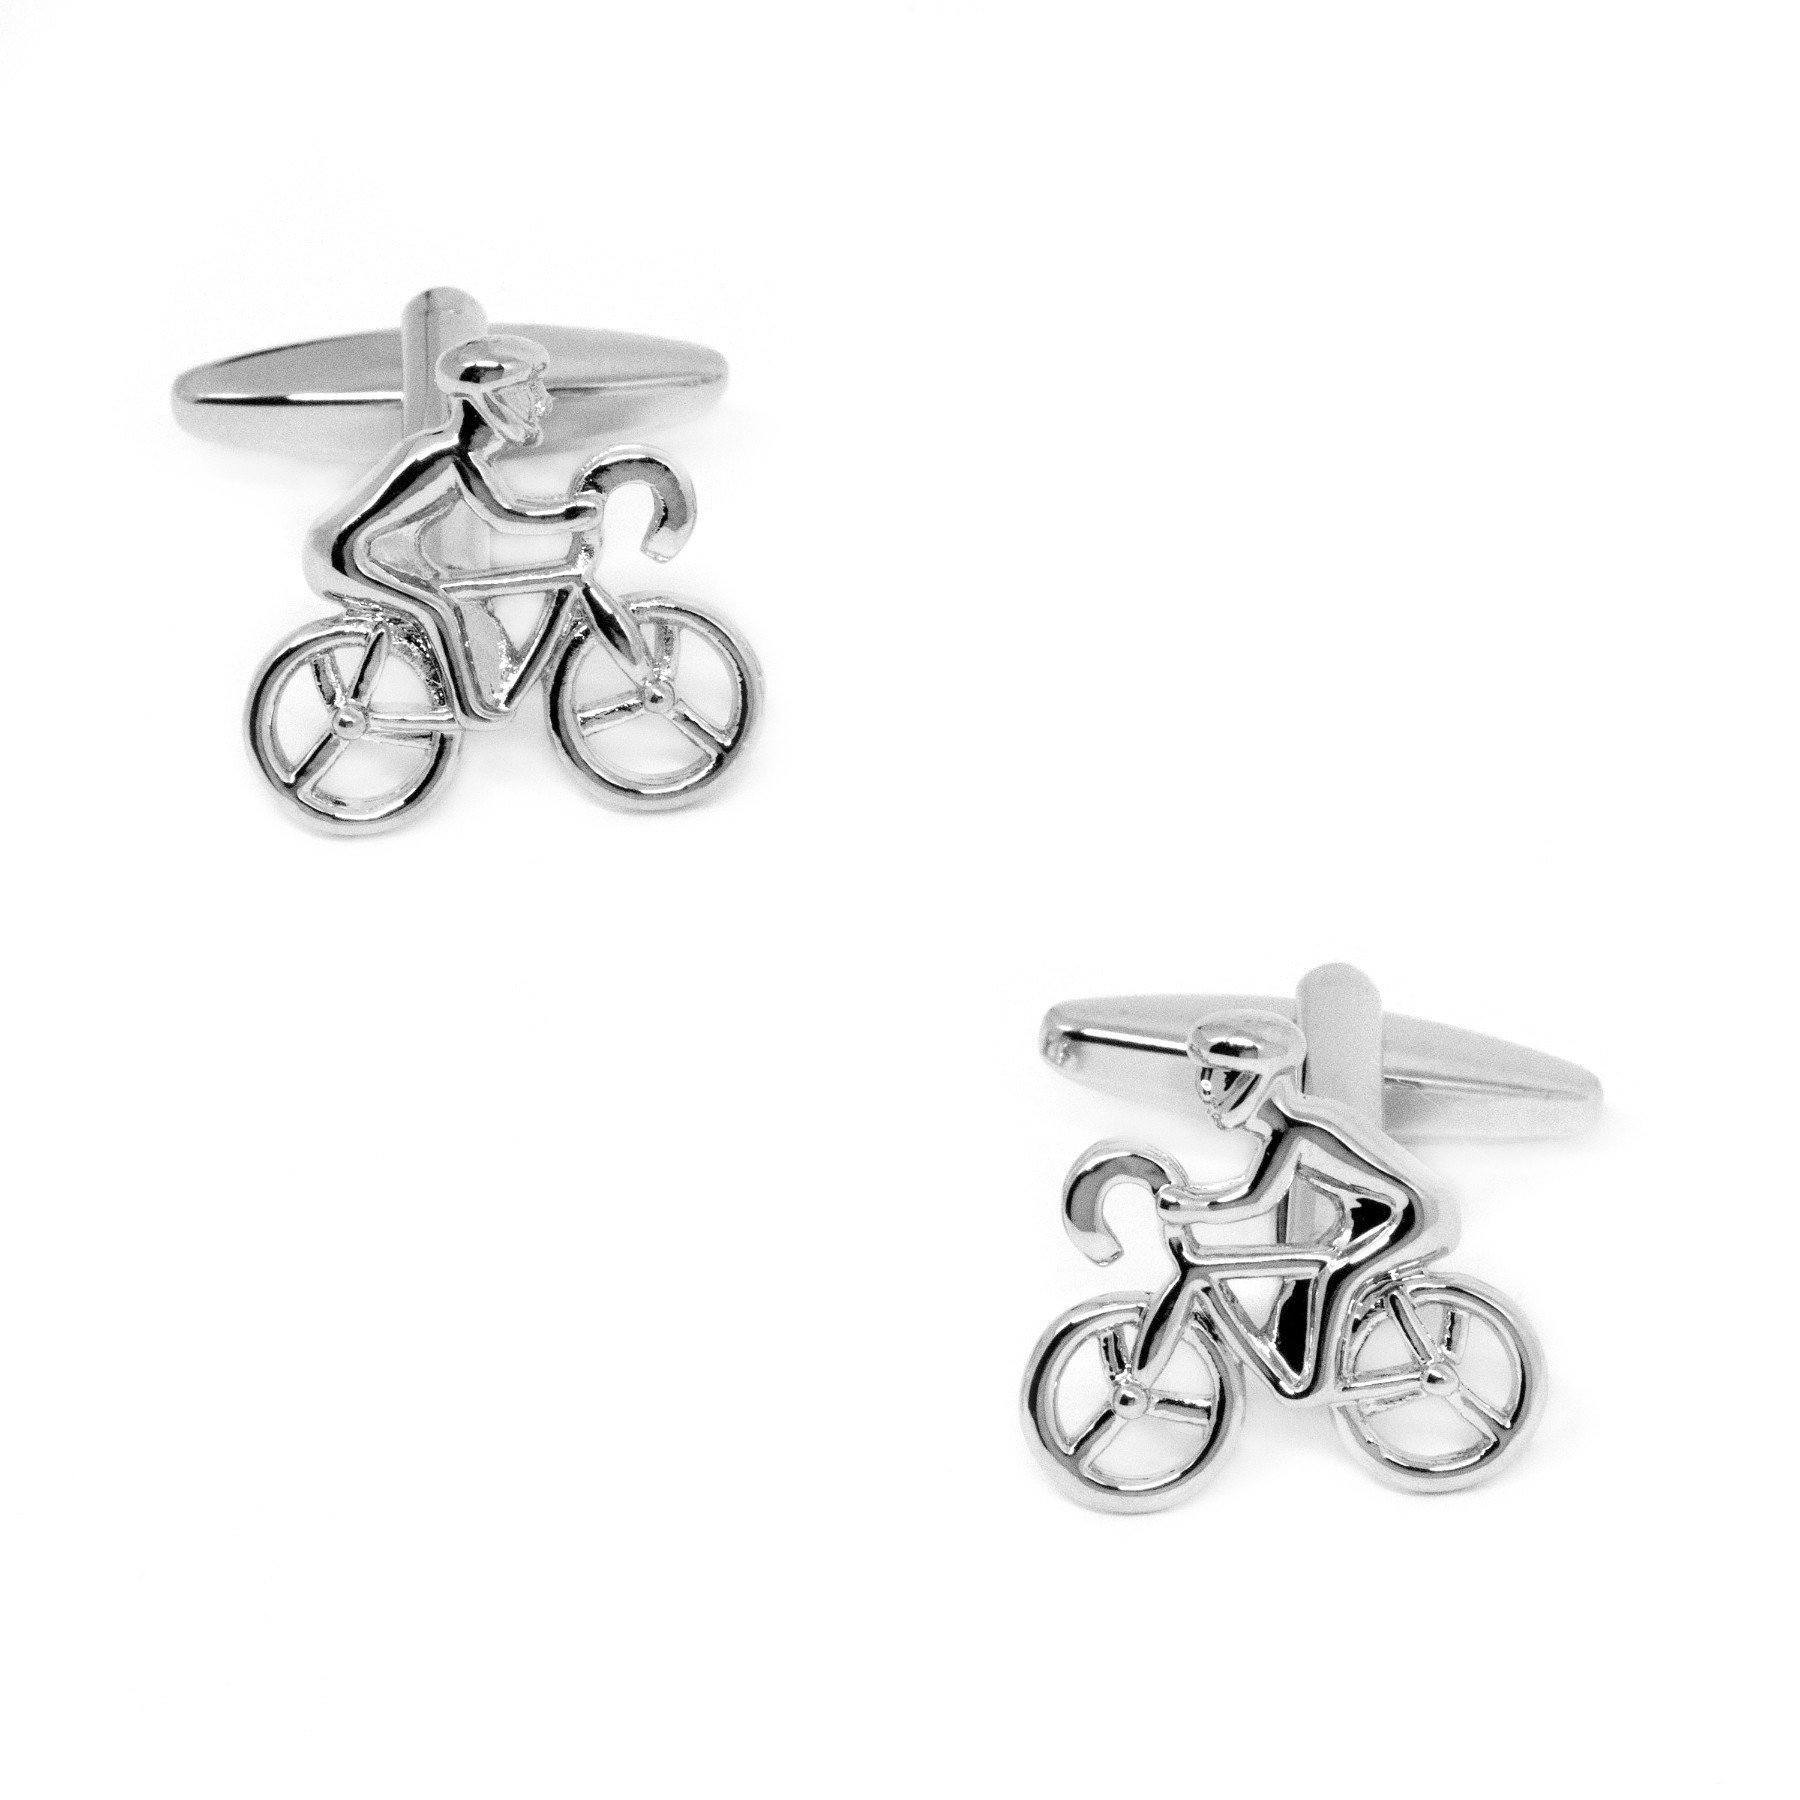 Silver Bicycle Cyclist Cufflinks, Novelty Cufflinks, Cuffed.com.au, CL4041, $29.00